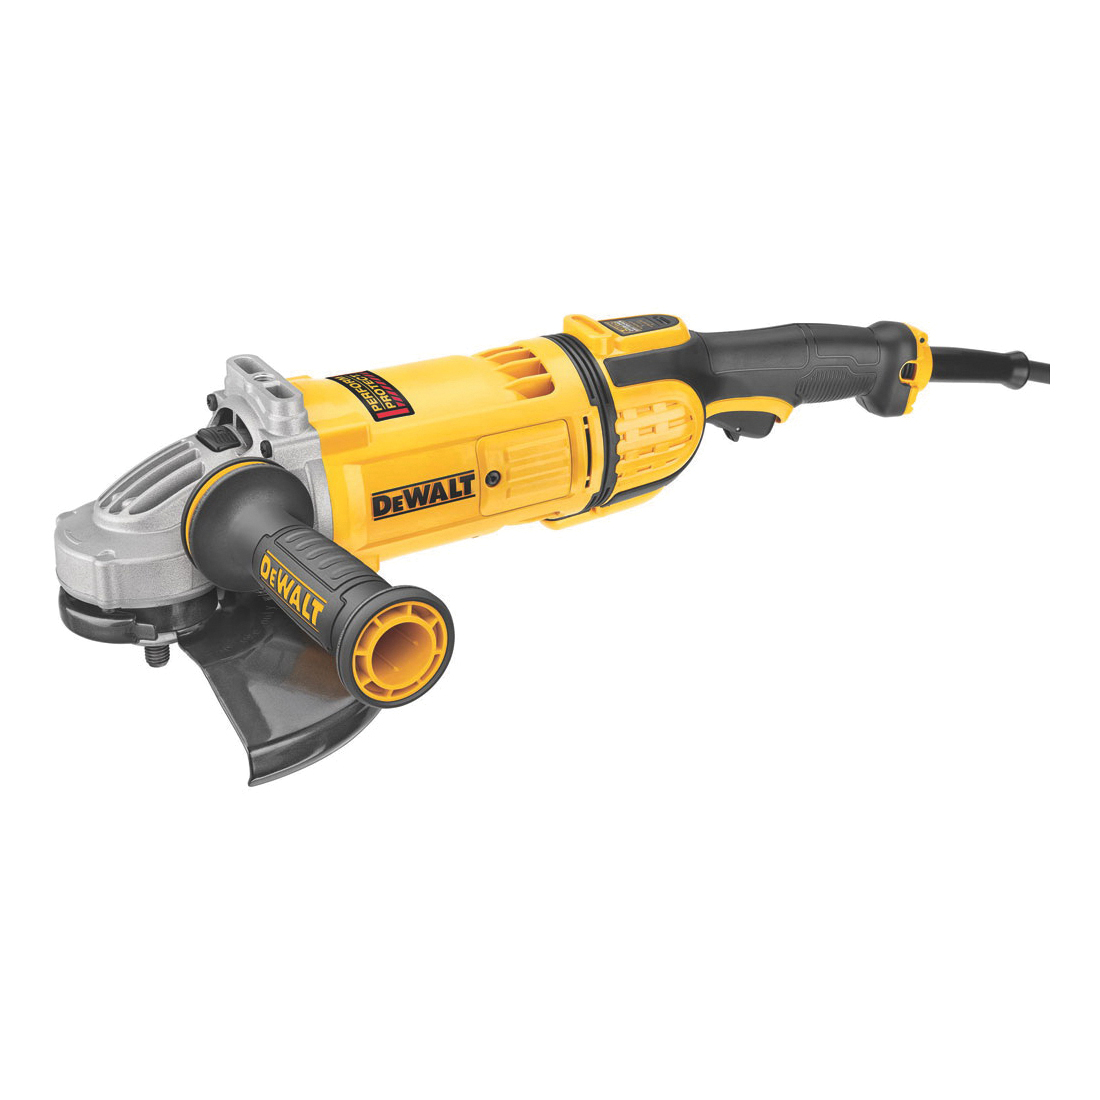 DeWALT® DWE4599N Protect™ Large Angle Grinder, 9 in Dia Wheel, 5/8-11 Arbor/Shank, 120 VAC, Yellow, Yes, Lock-Off Trigger Switch Switch